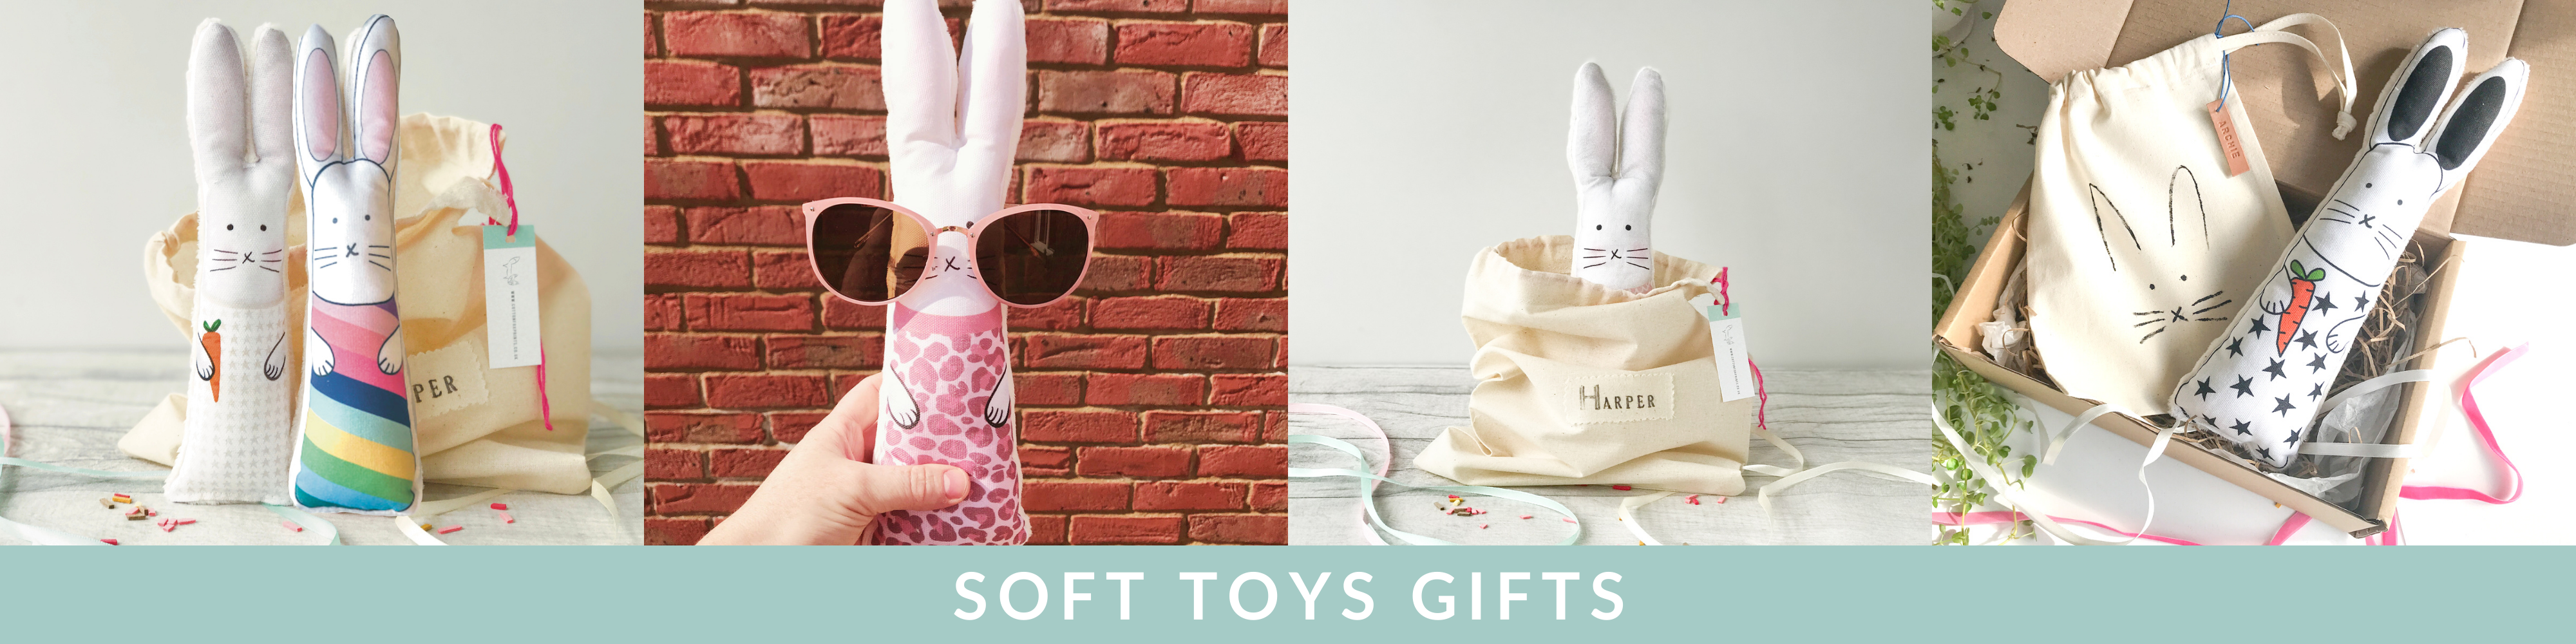 Soft toy gifts